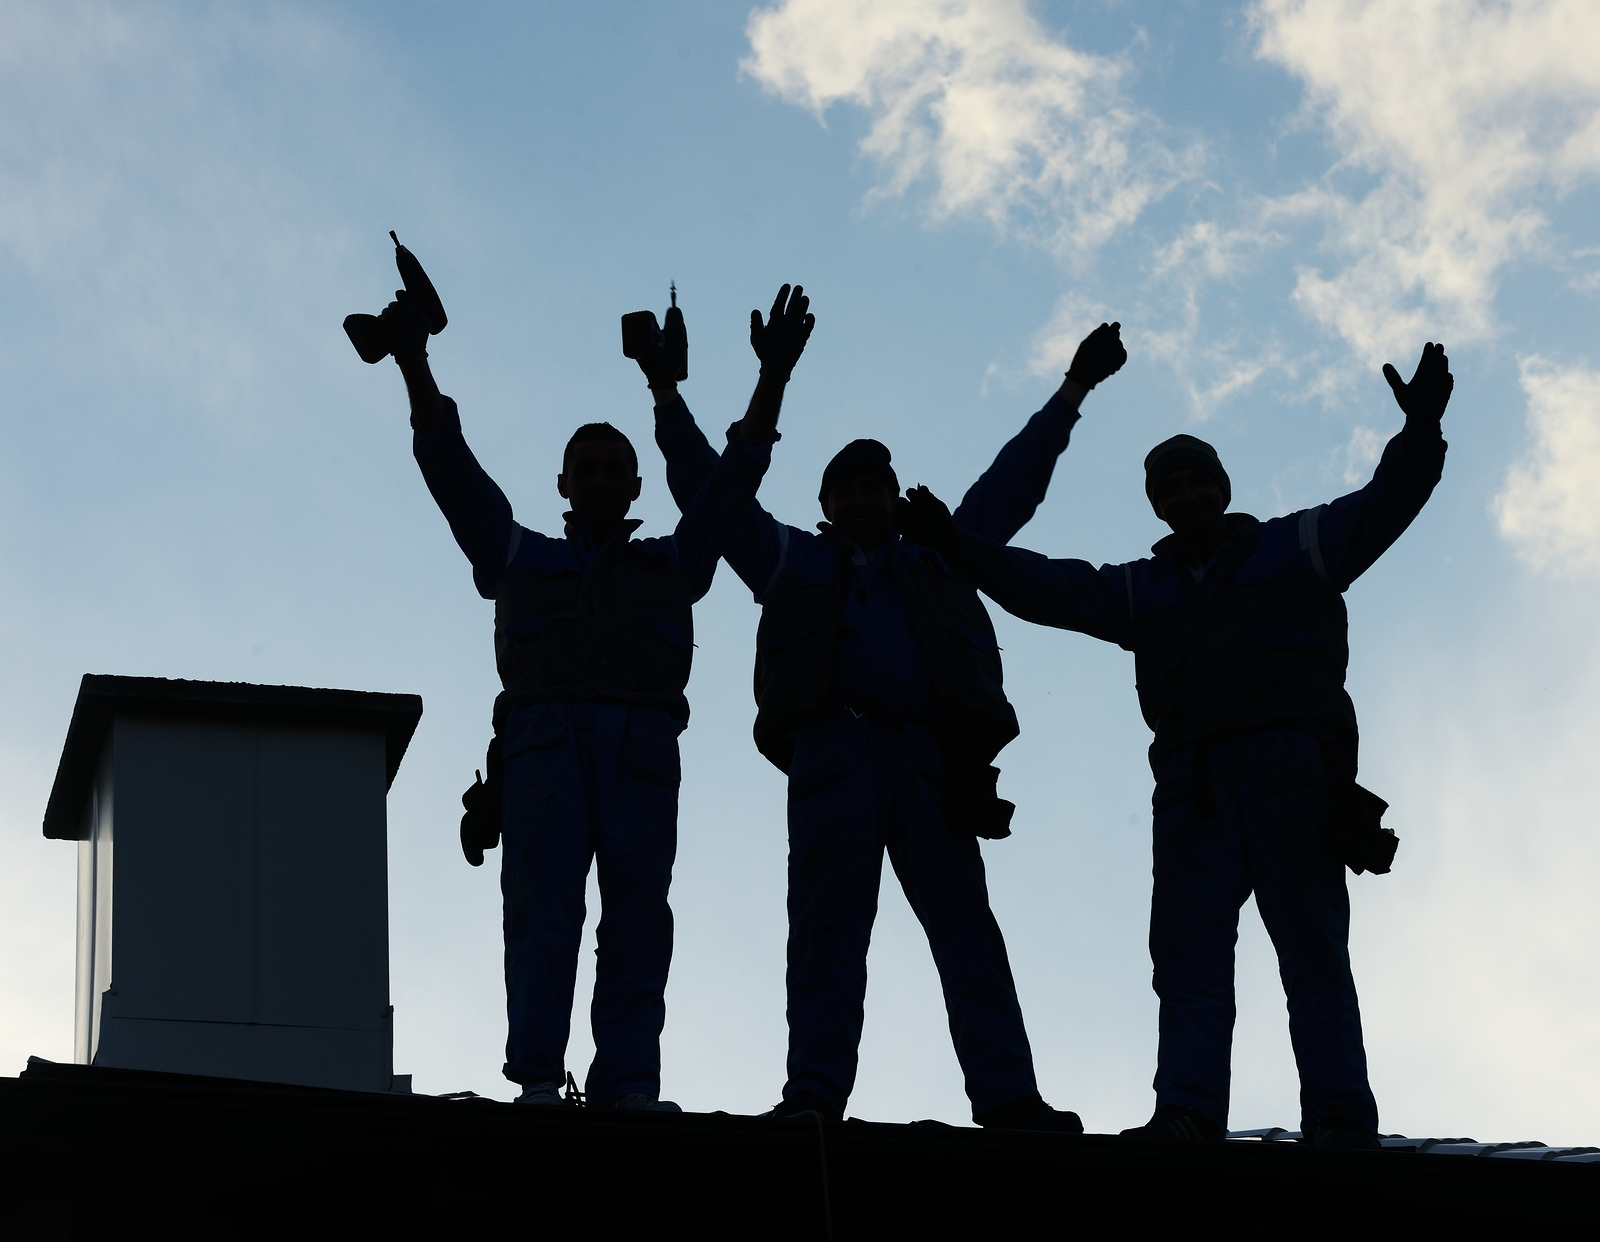 Silhouette of roofers